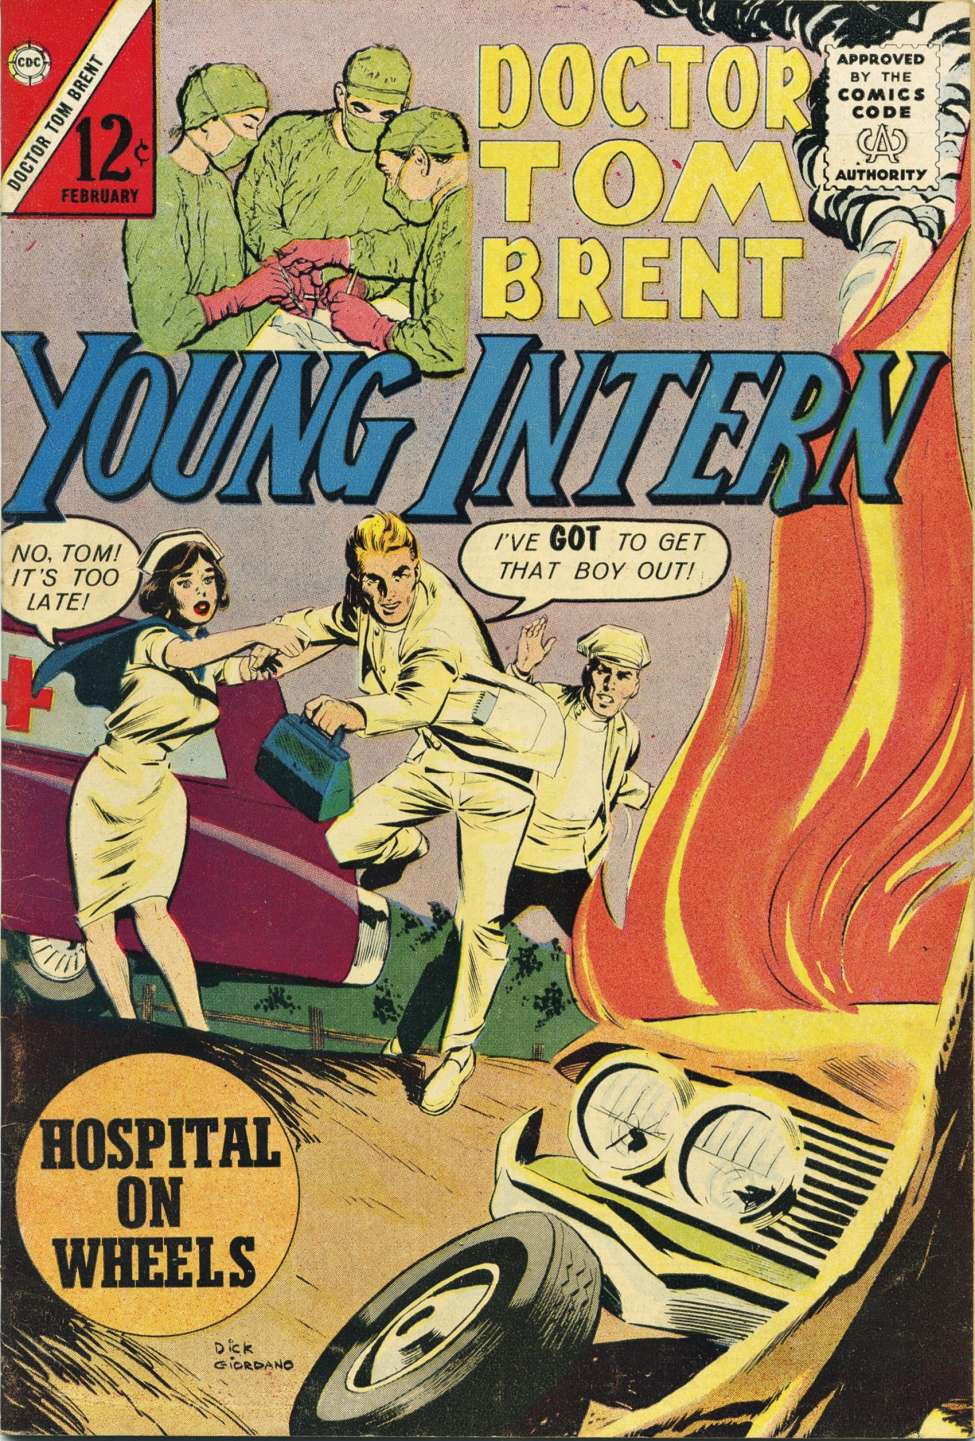 Comic Book Cover For Doctor Tom Brent, Young Intern 1